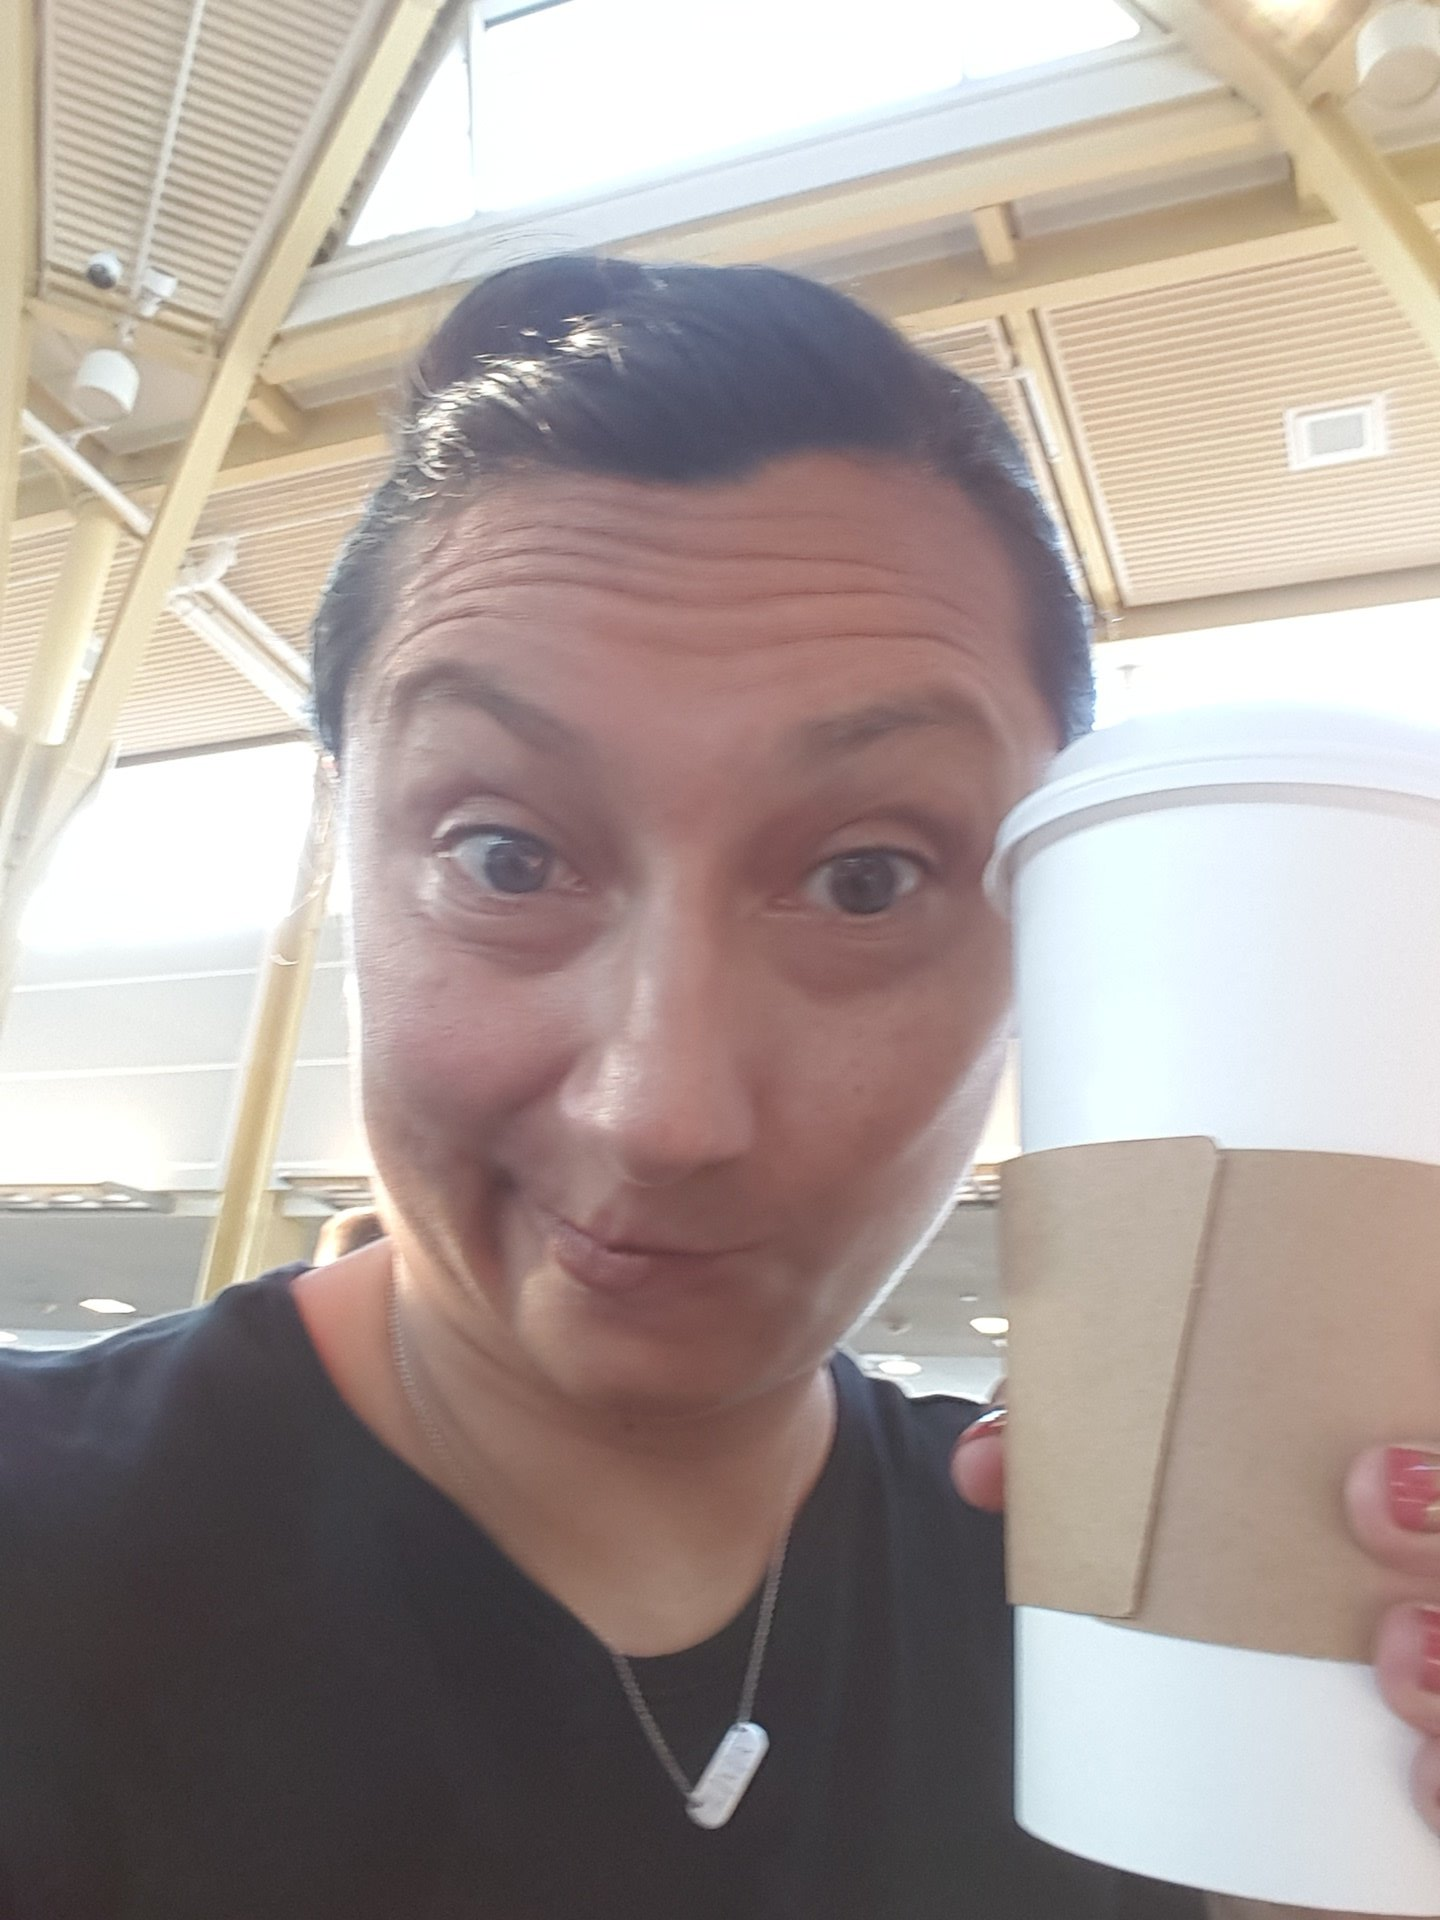 As my youngest would say...9a departures suit me. San Francisco, here I come!! #AFTACON #Aftamember https://t.co/Q5HFJl7xCz